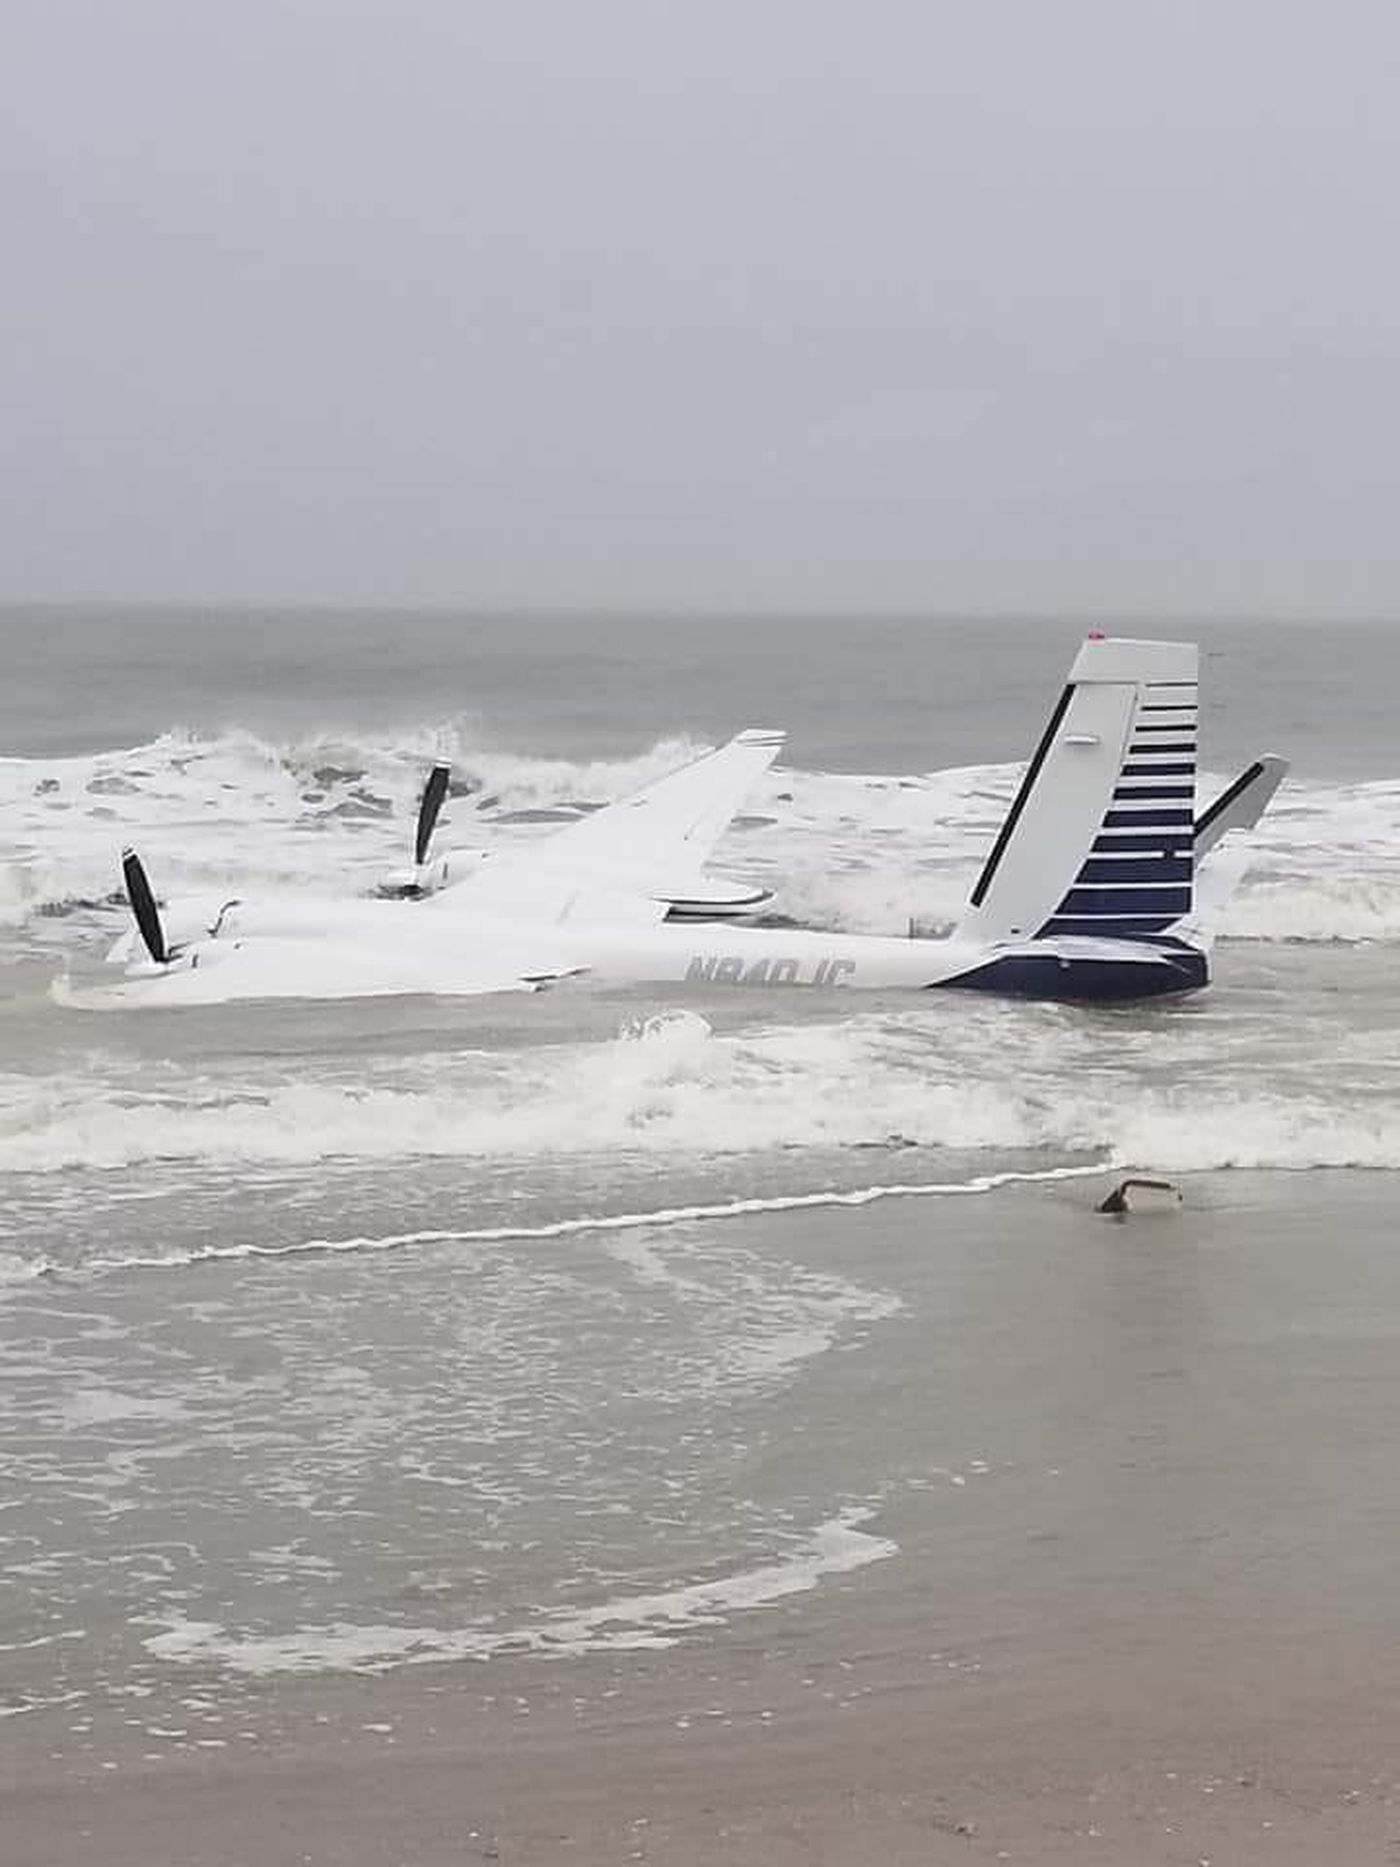 A Plane Landed In The Water Monday Near Springmaid Pier In Myrtle Beach Source